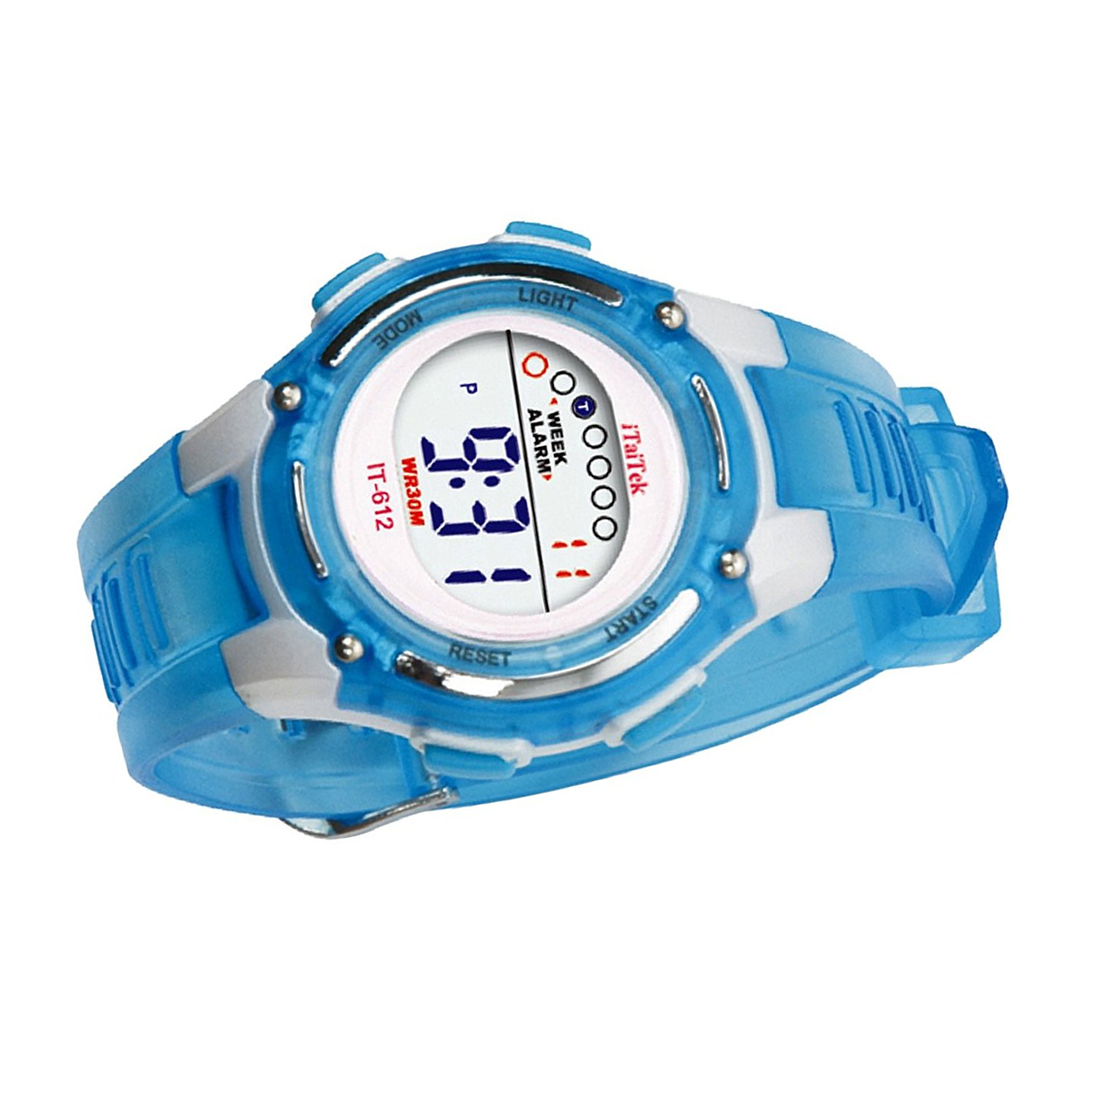 ITaiTek Kids Swimming Digital Sports Waterproof Wrist Watch (Green)